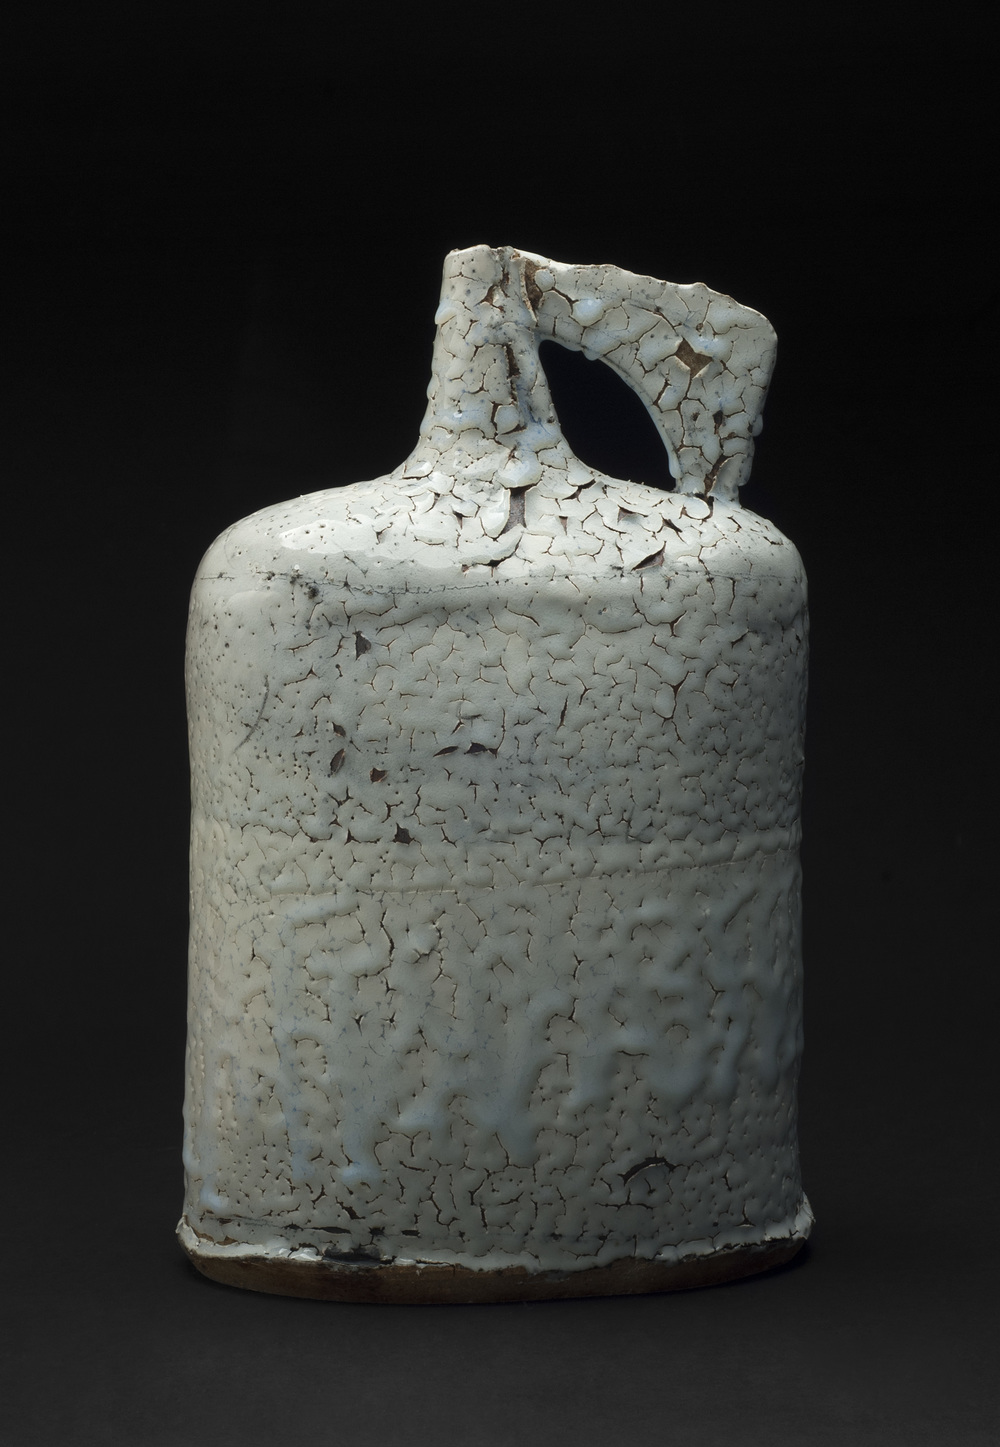 Jane Wheeler    Black Ice Flagon  , 2013 Stoneware clay with chun glaze, slab built 14.75 x 9.45 x 6.5 inches  /  37.5 x 24 x 16.5 cm  /  JWh 3